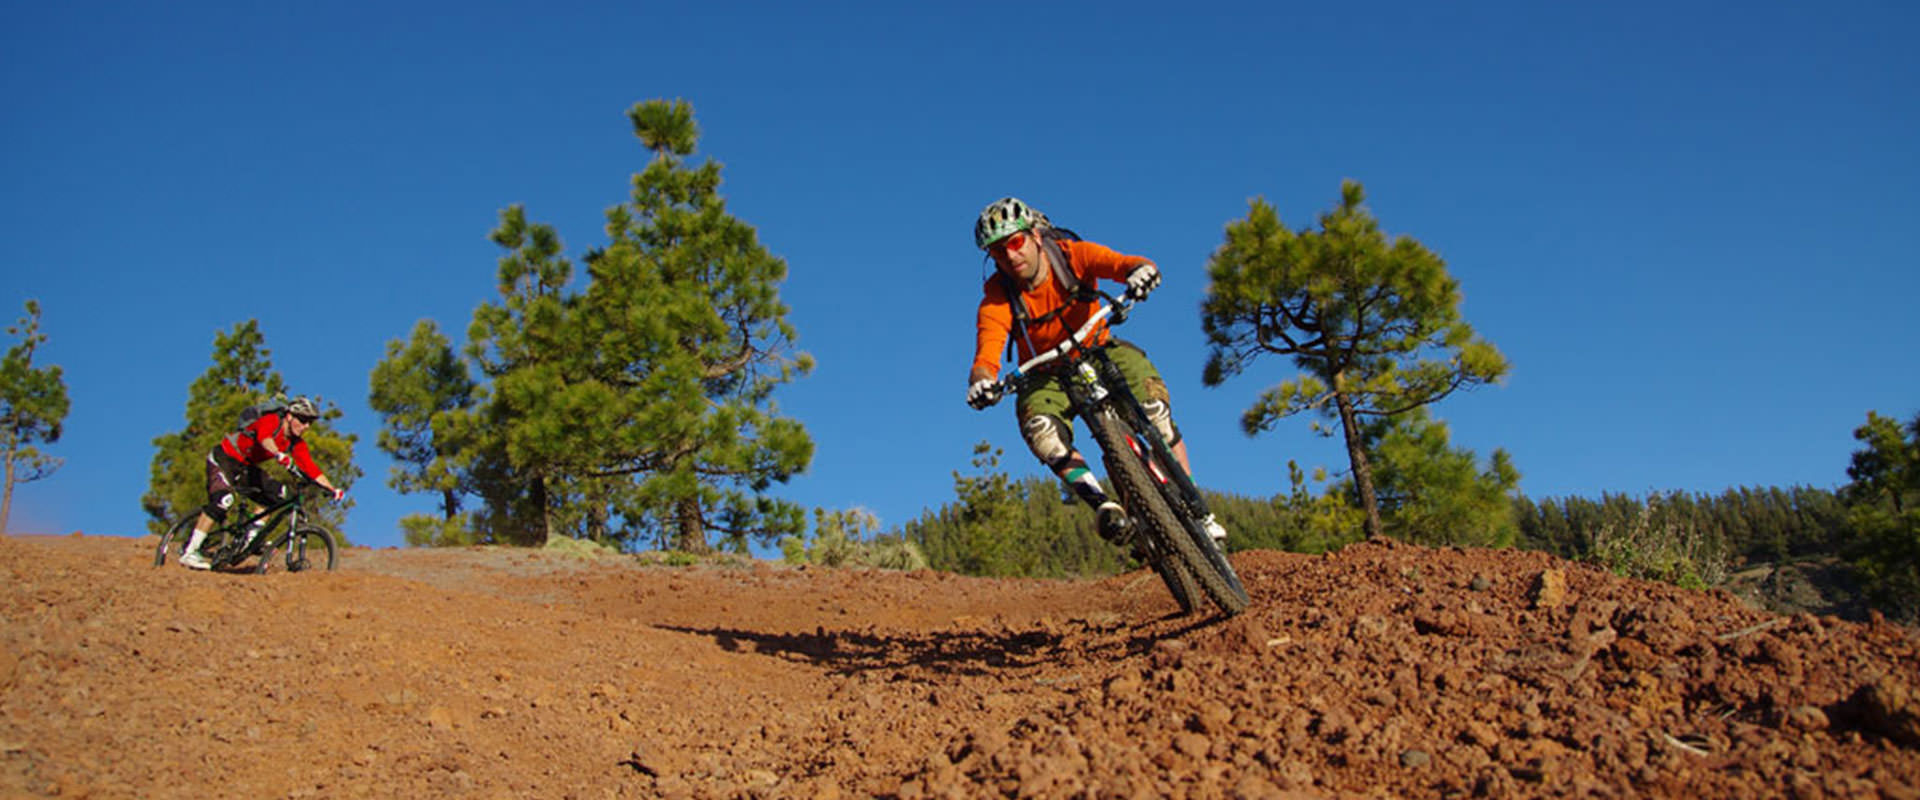 enduro mountain bike holidays header image